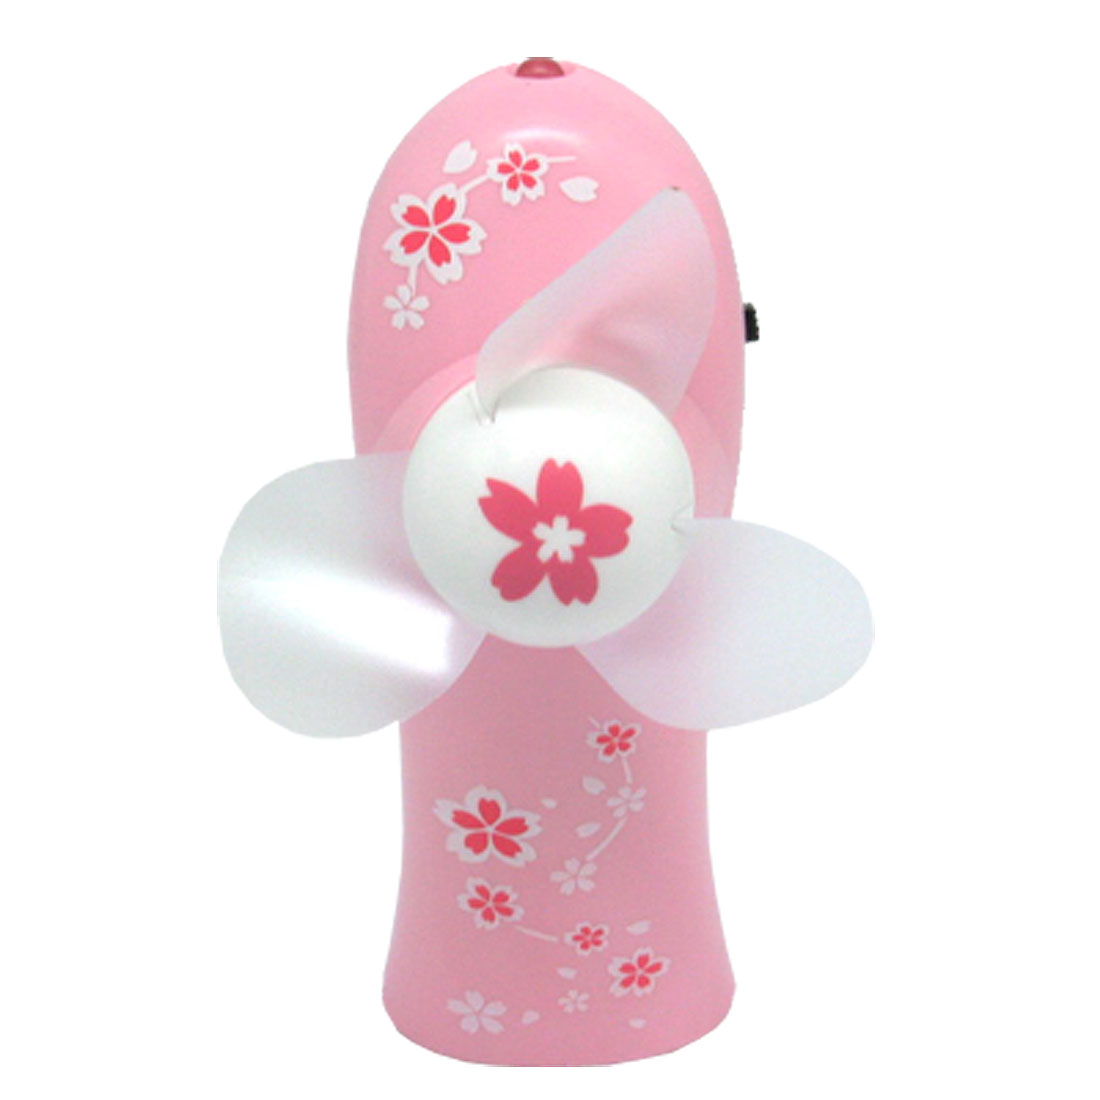 Personal Pink Battery Powered Fan with 1LED Light and Neck Strap